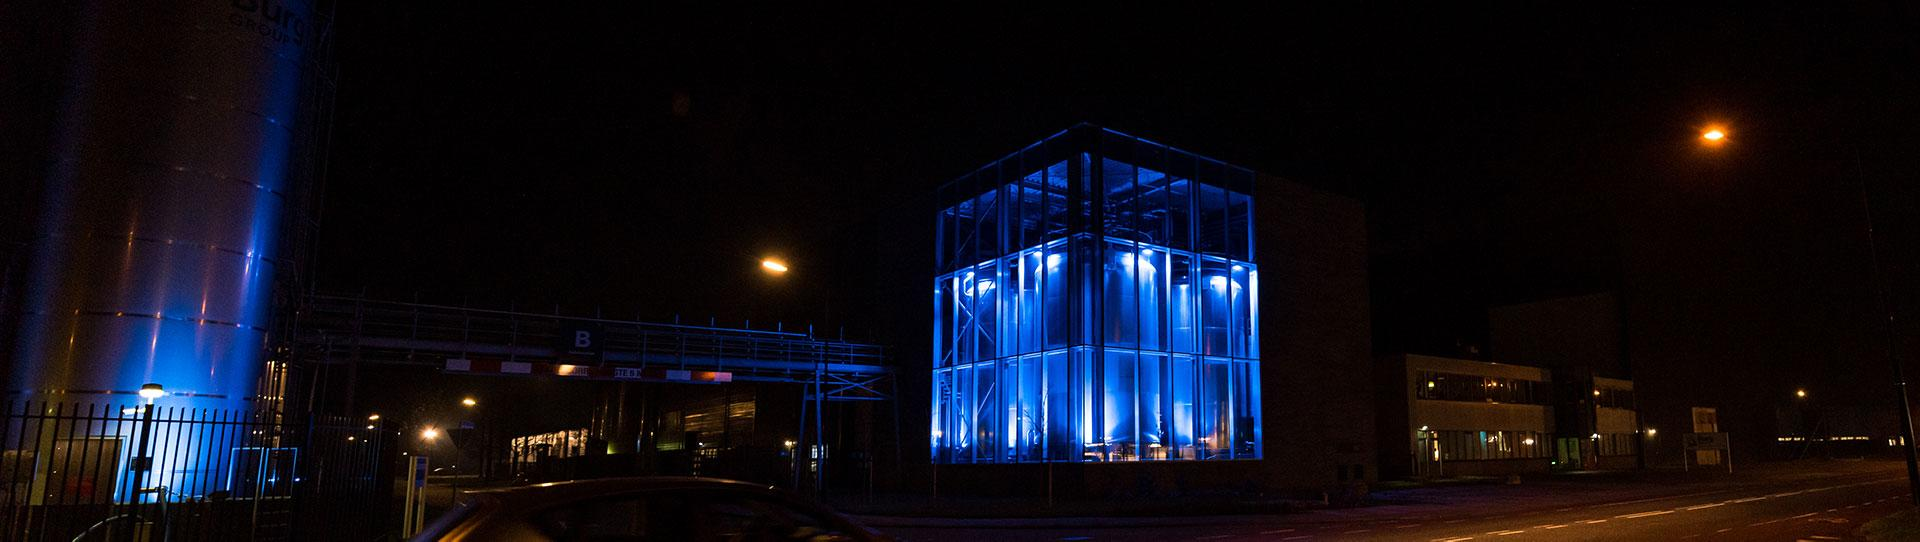 Burg Azijn outdoor blue lighting